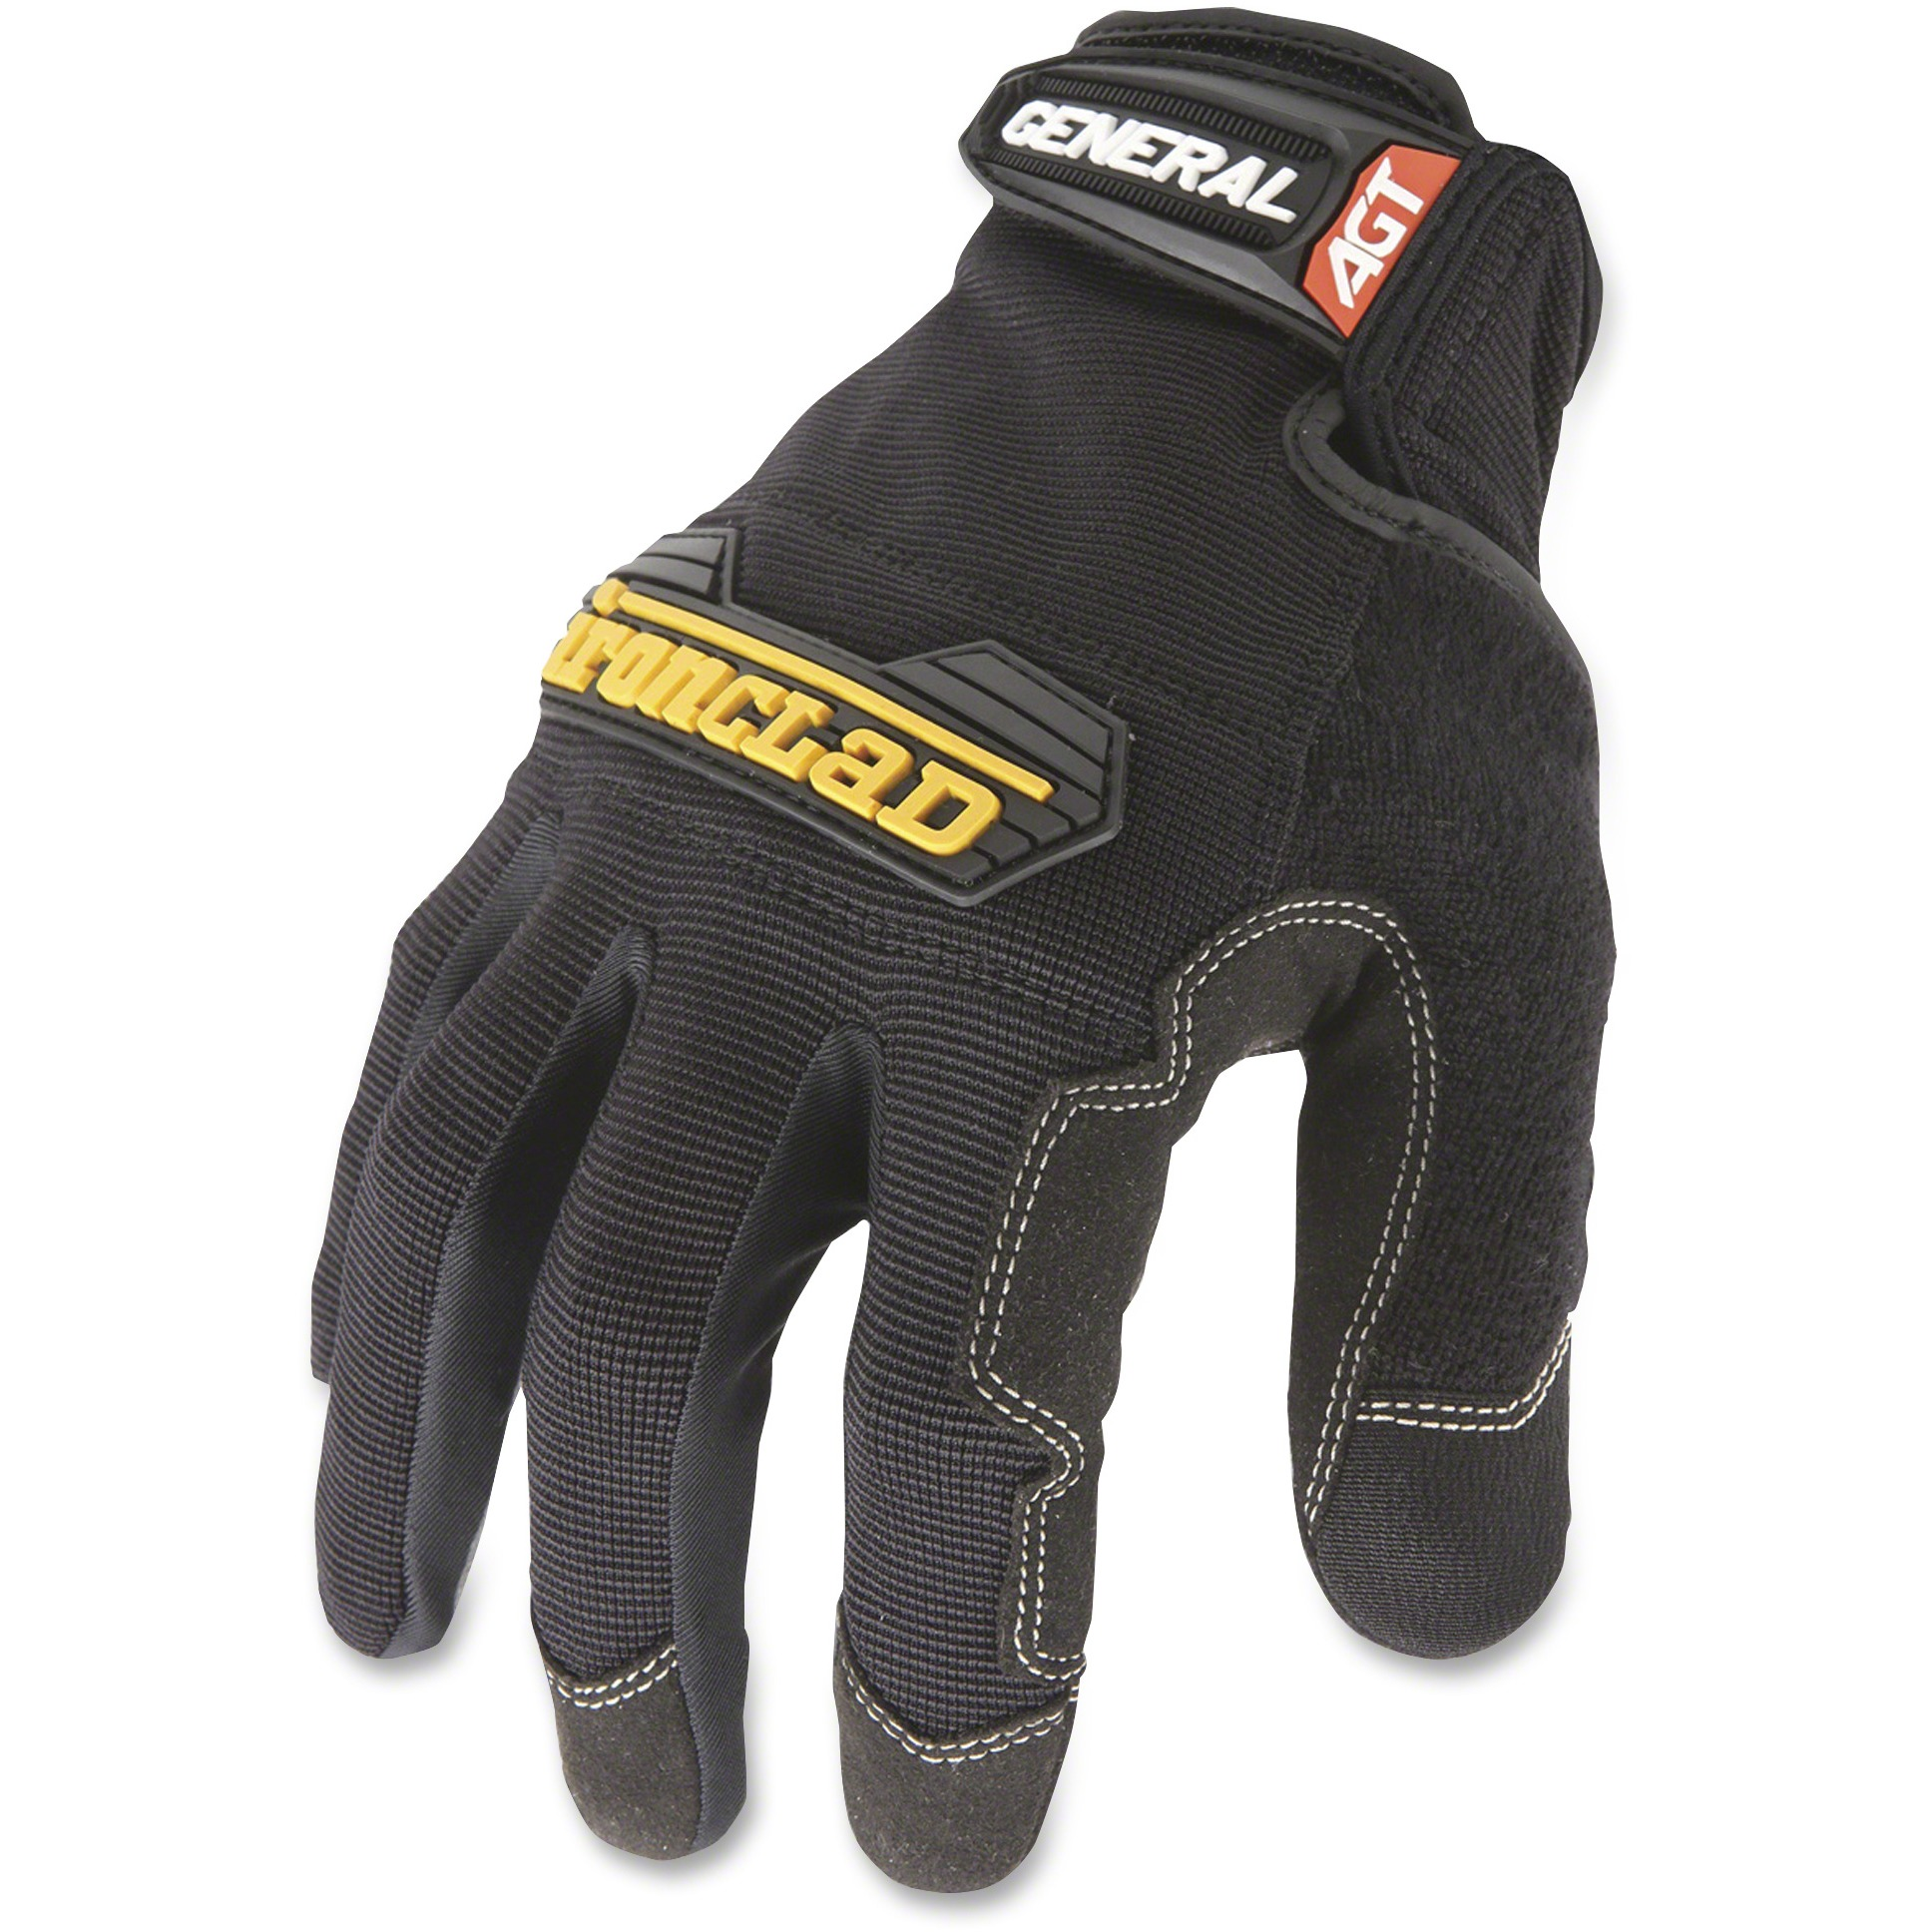 Ironclad, IRNGUG04L, General Utility Gloves, 2 / Pair, Large, Black